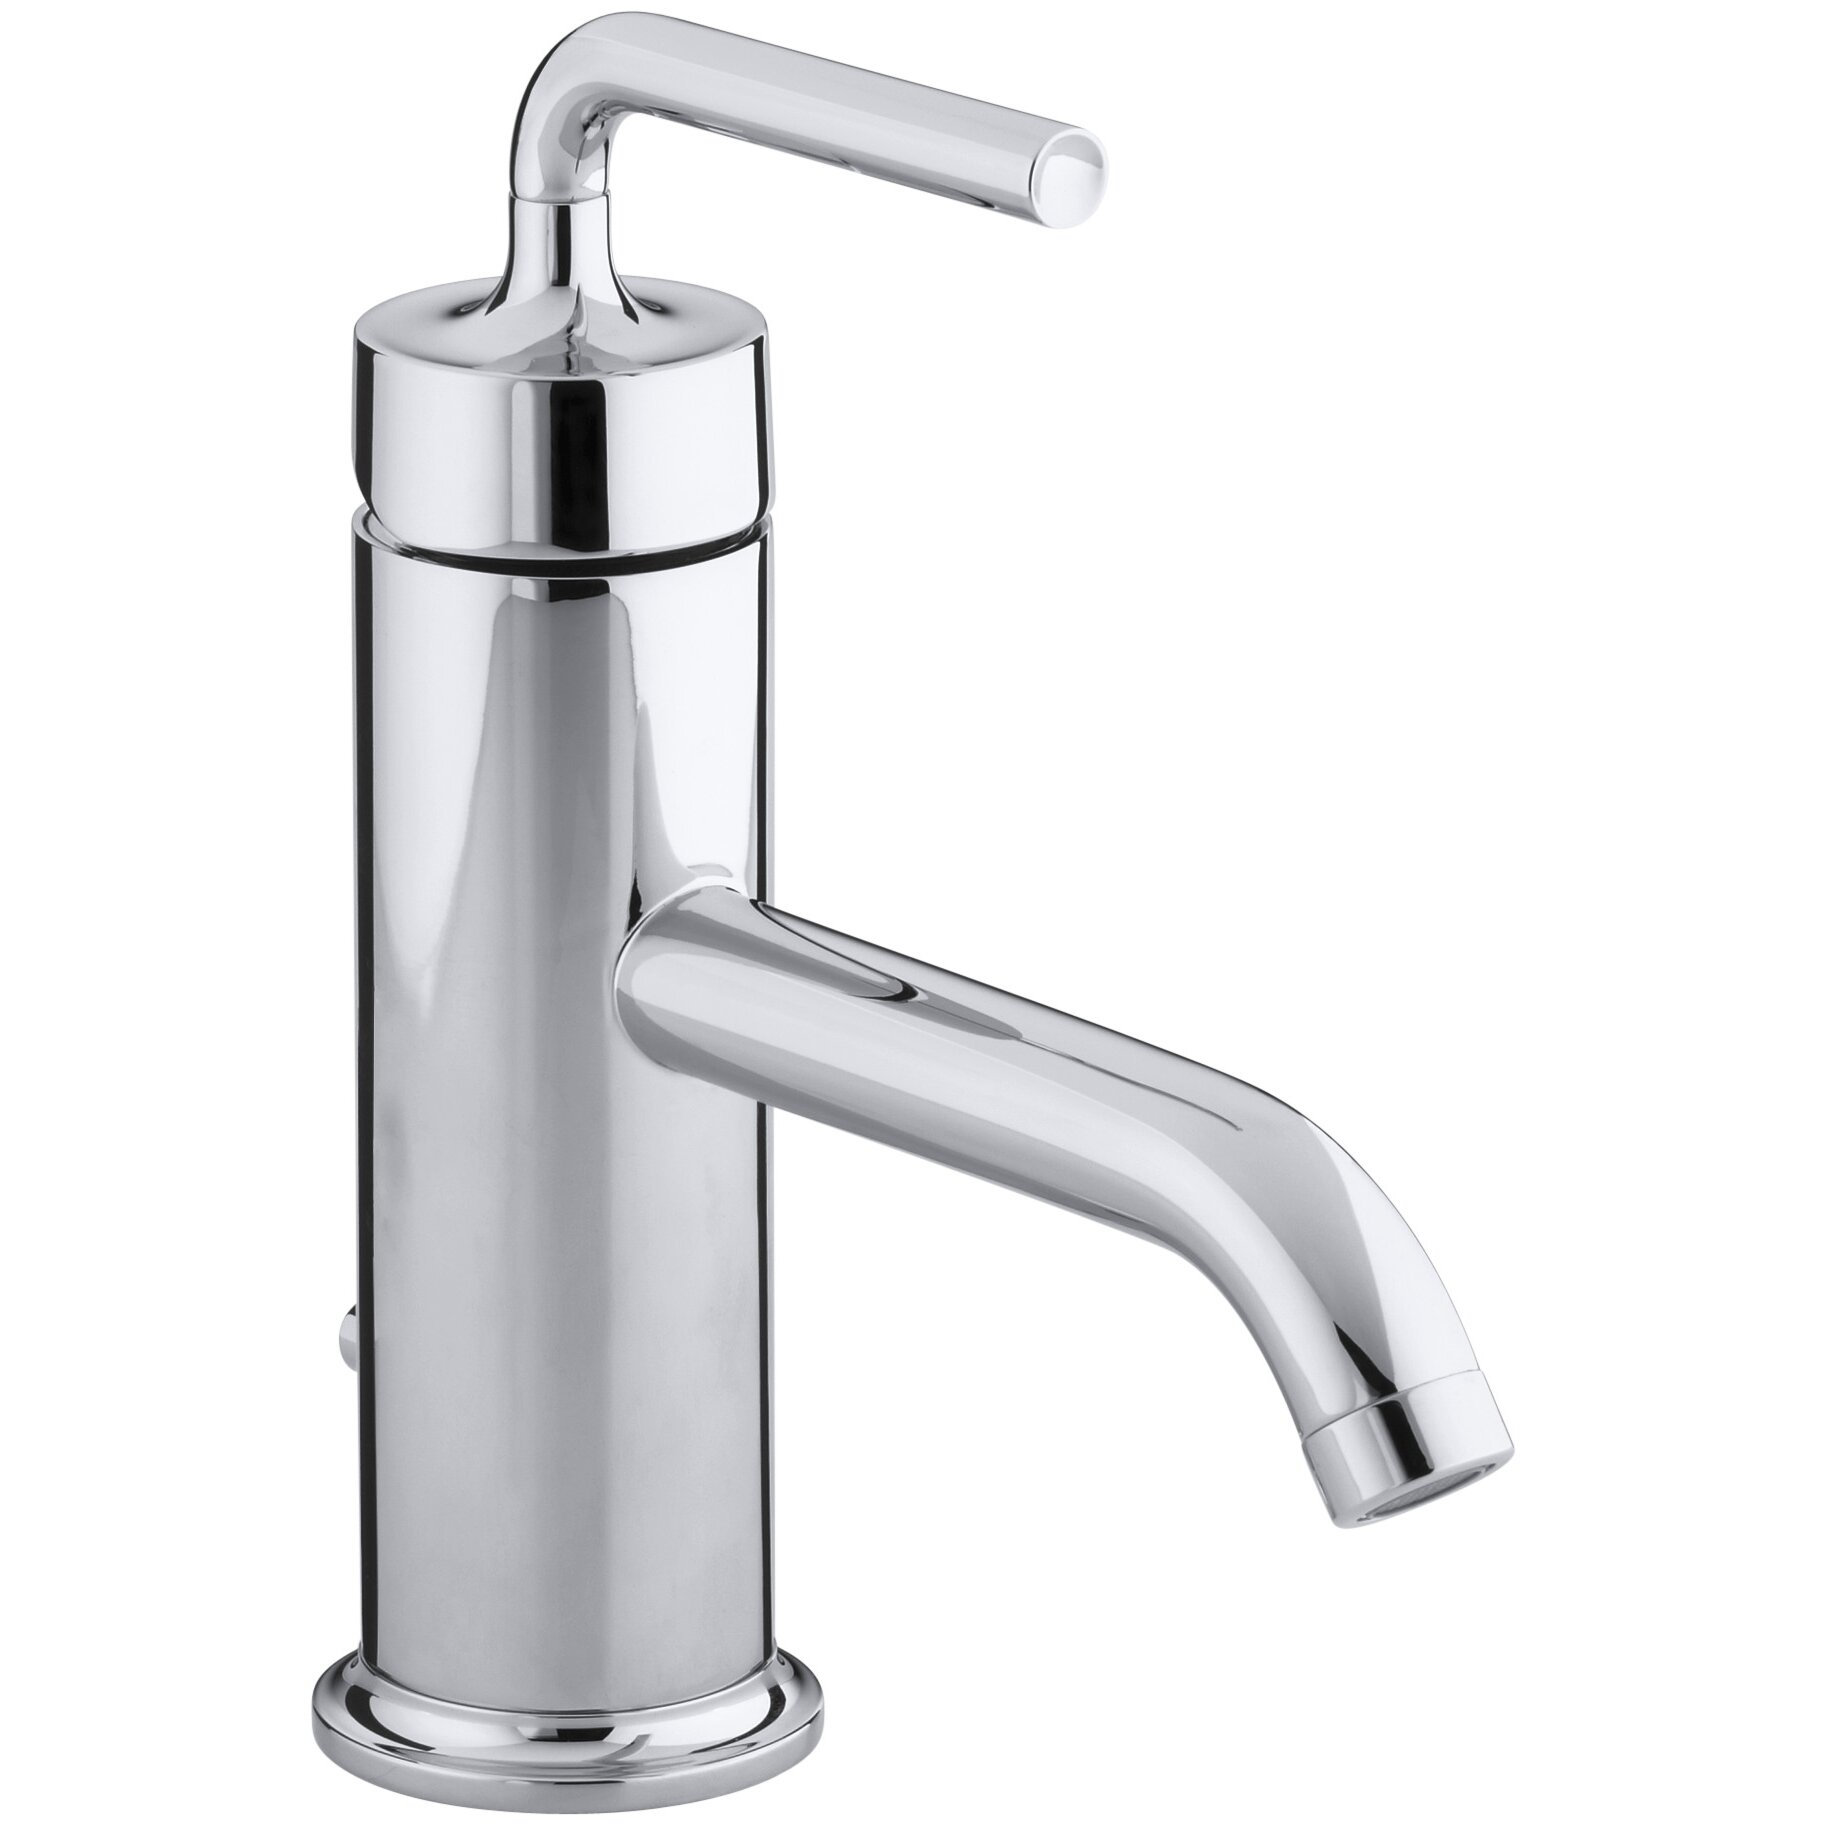 Kohler purist single hole bathroom sink faucet with Kohler bathroom design tool